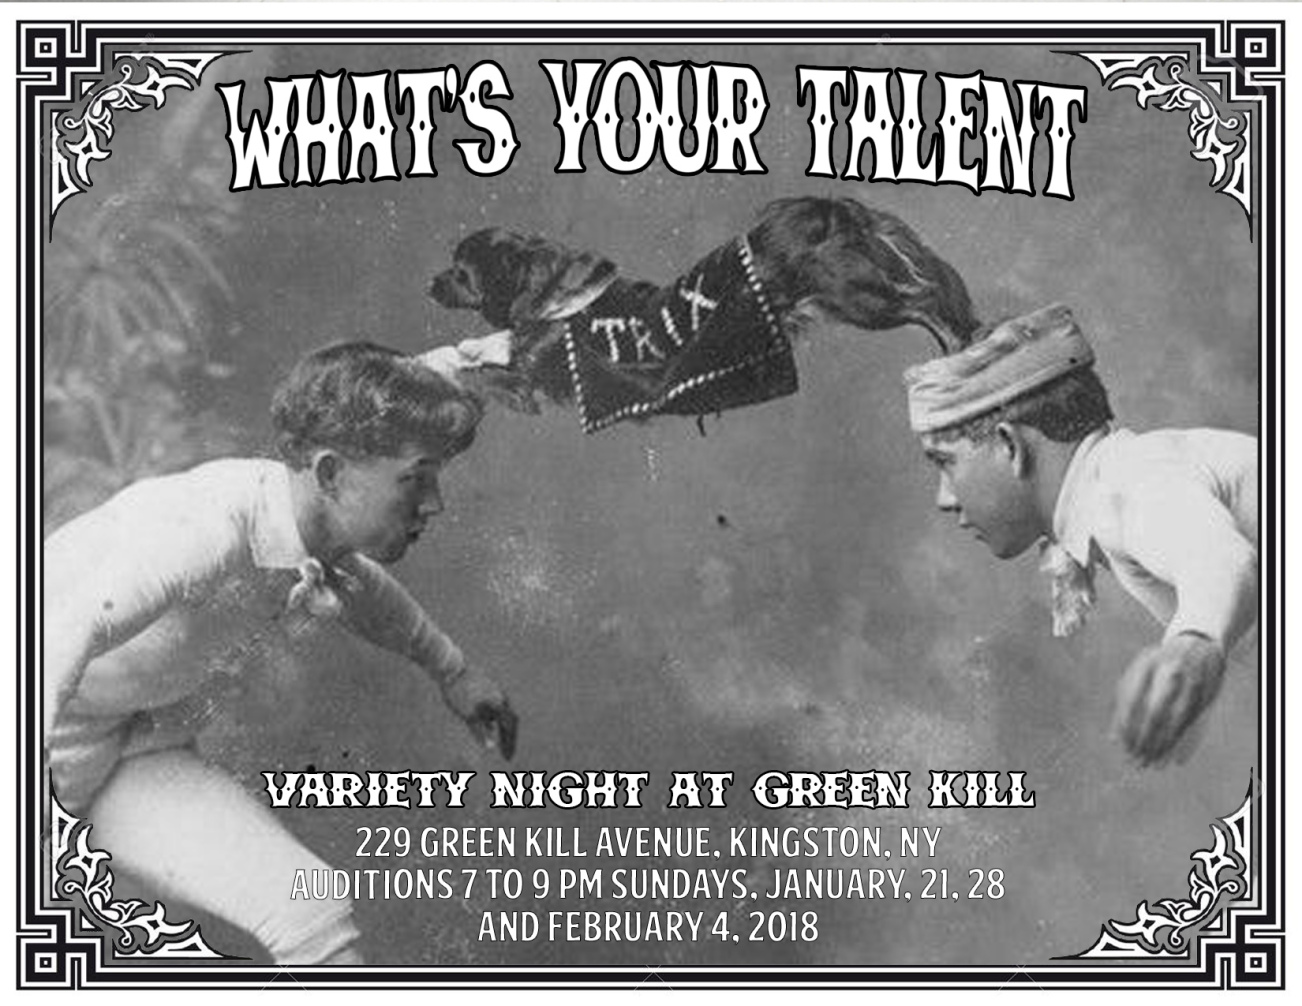 Call for Talent for Variety Night at Green Kill